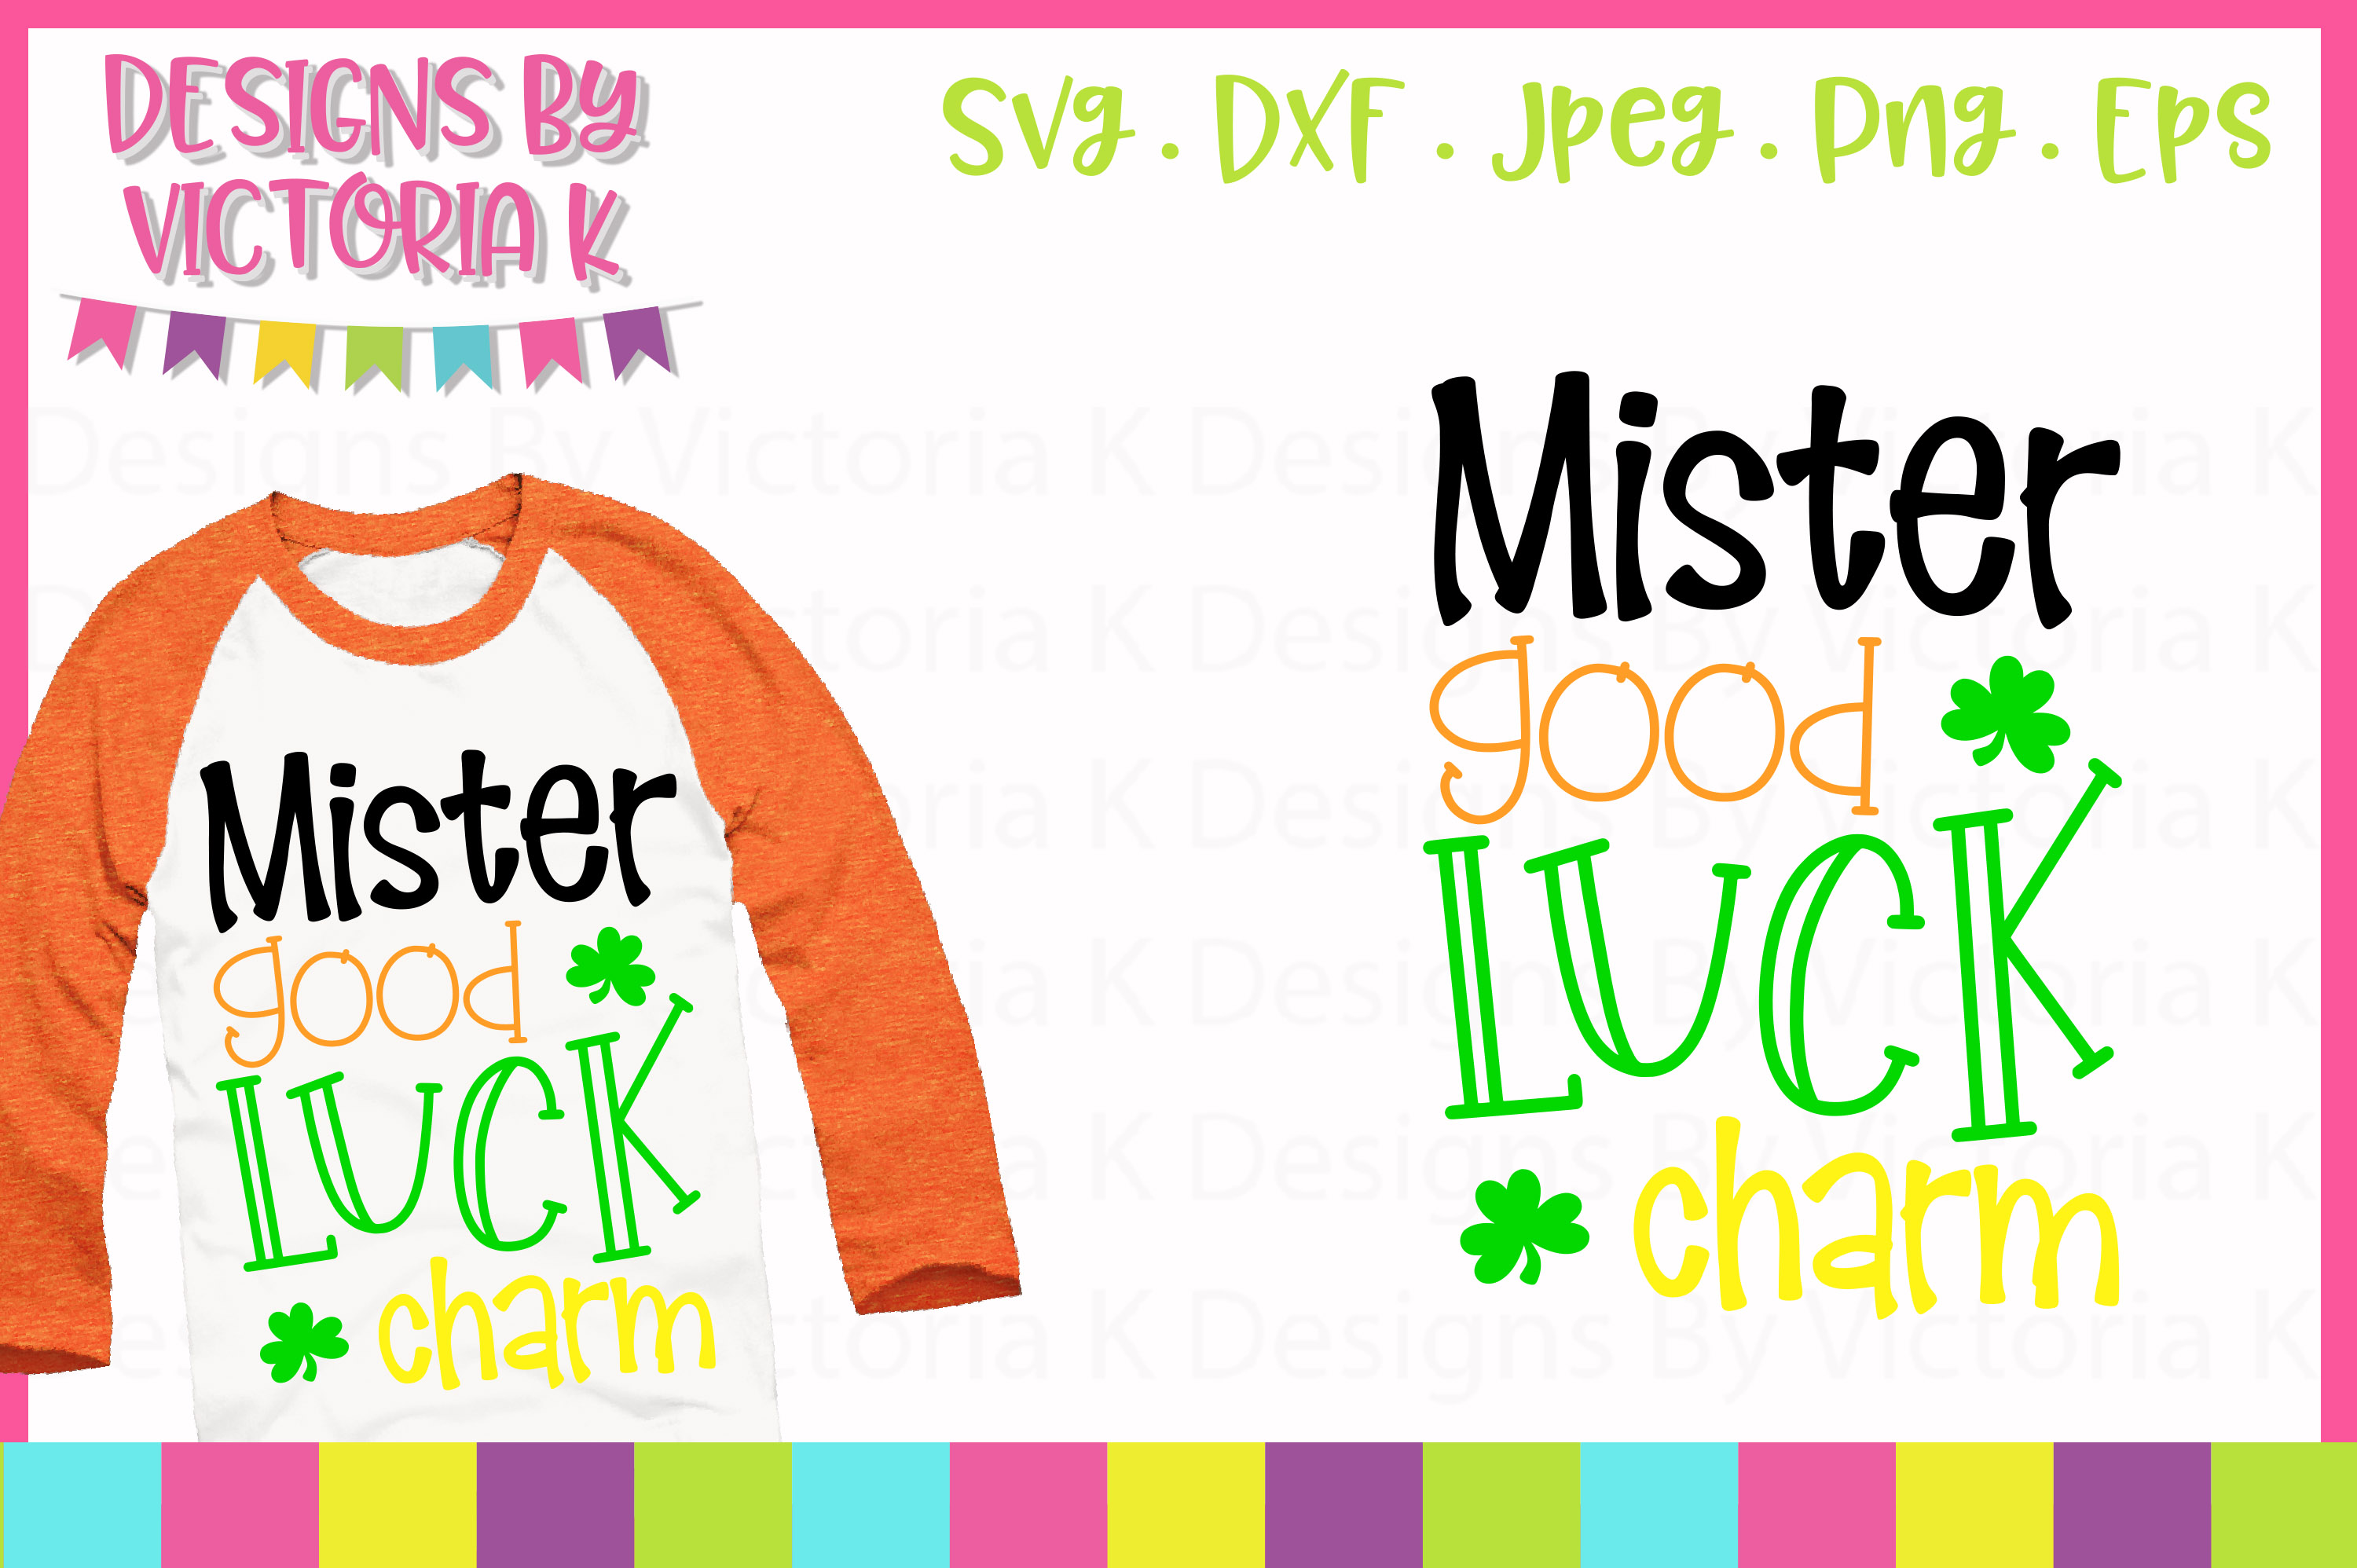 Download Free Mister Good Luck Charm Svg Graphic By Designs By Victoria K for Cricut Explore, Silhouette and other cutting machines.